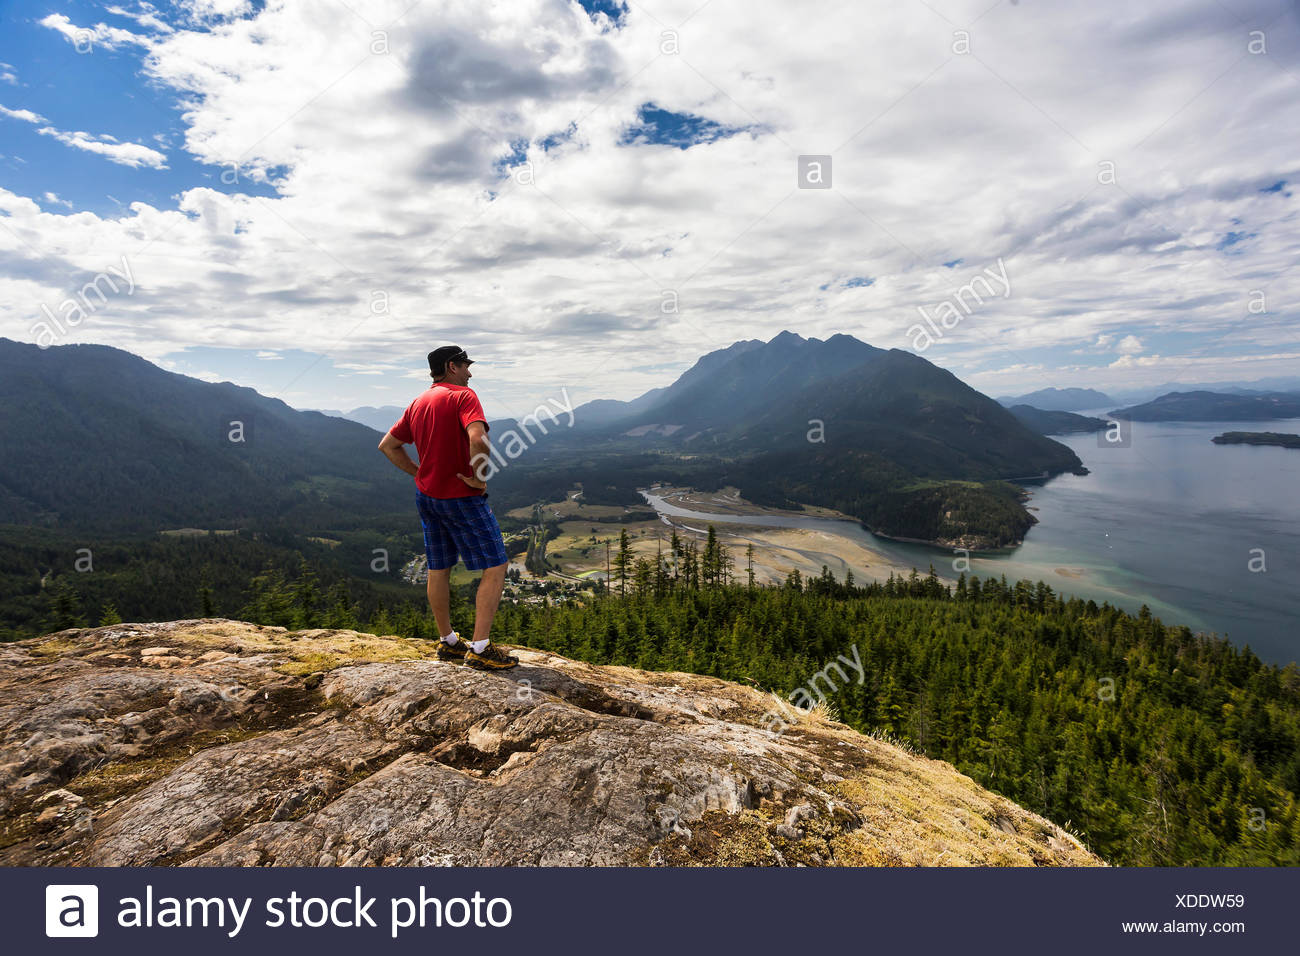 A hiker is rewarded with commanding views of Kelsey Bay, Johnstone strait and the Salmon River Estuary from a viewpoint high above the valley,  Sayward, Vancouver Island. - Stock Image